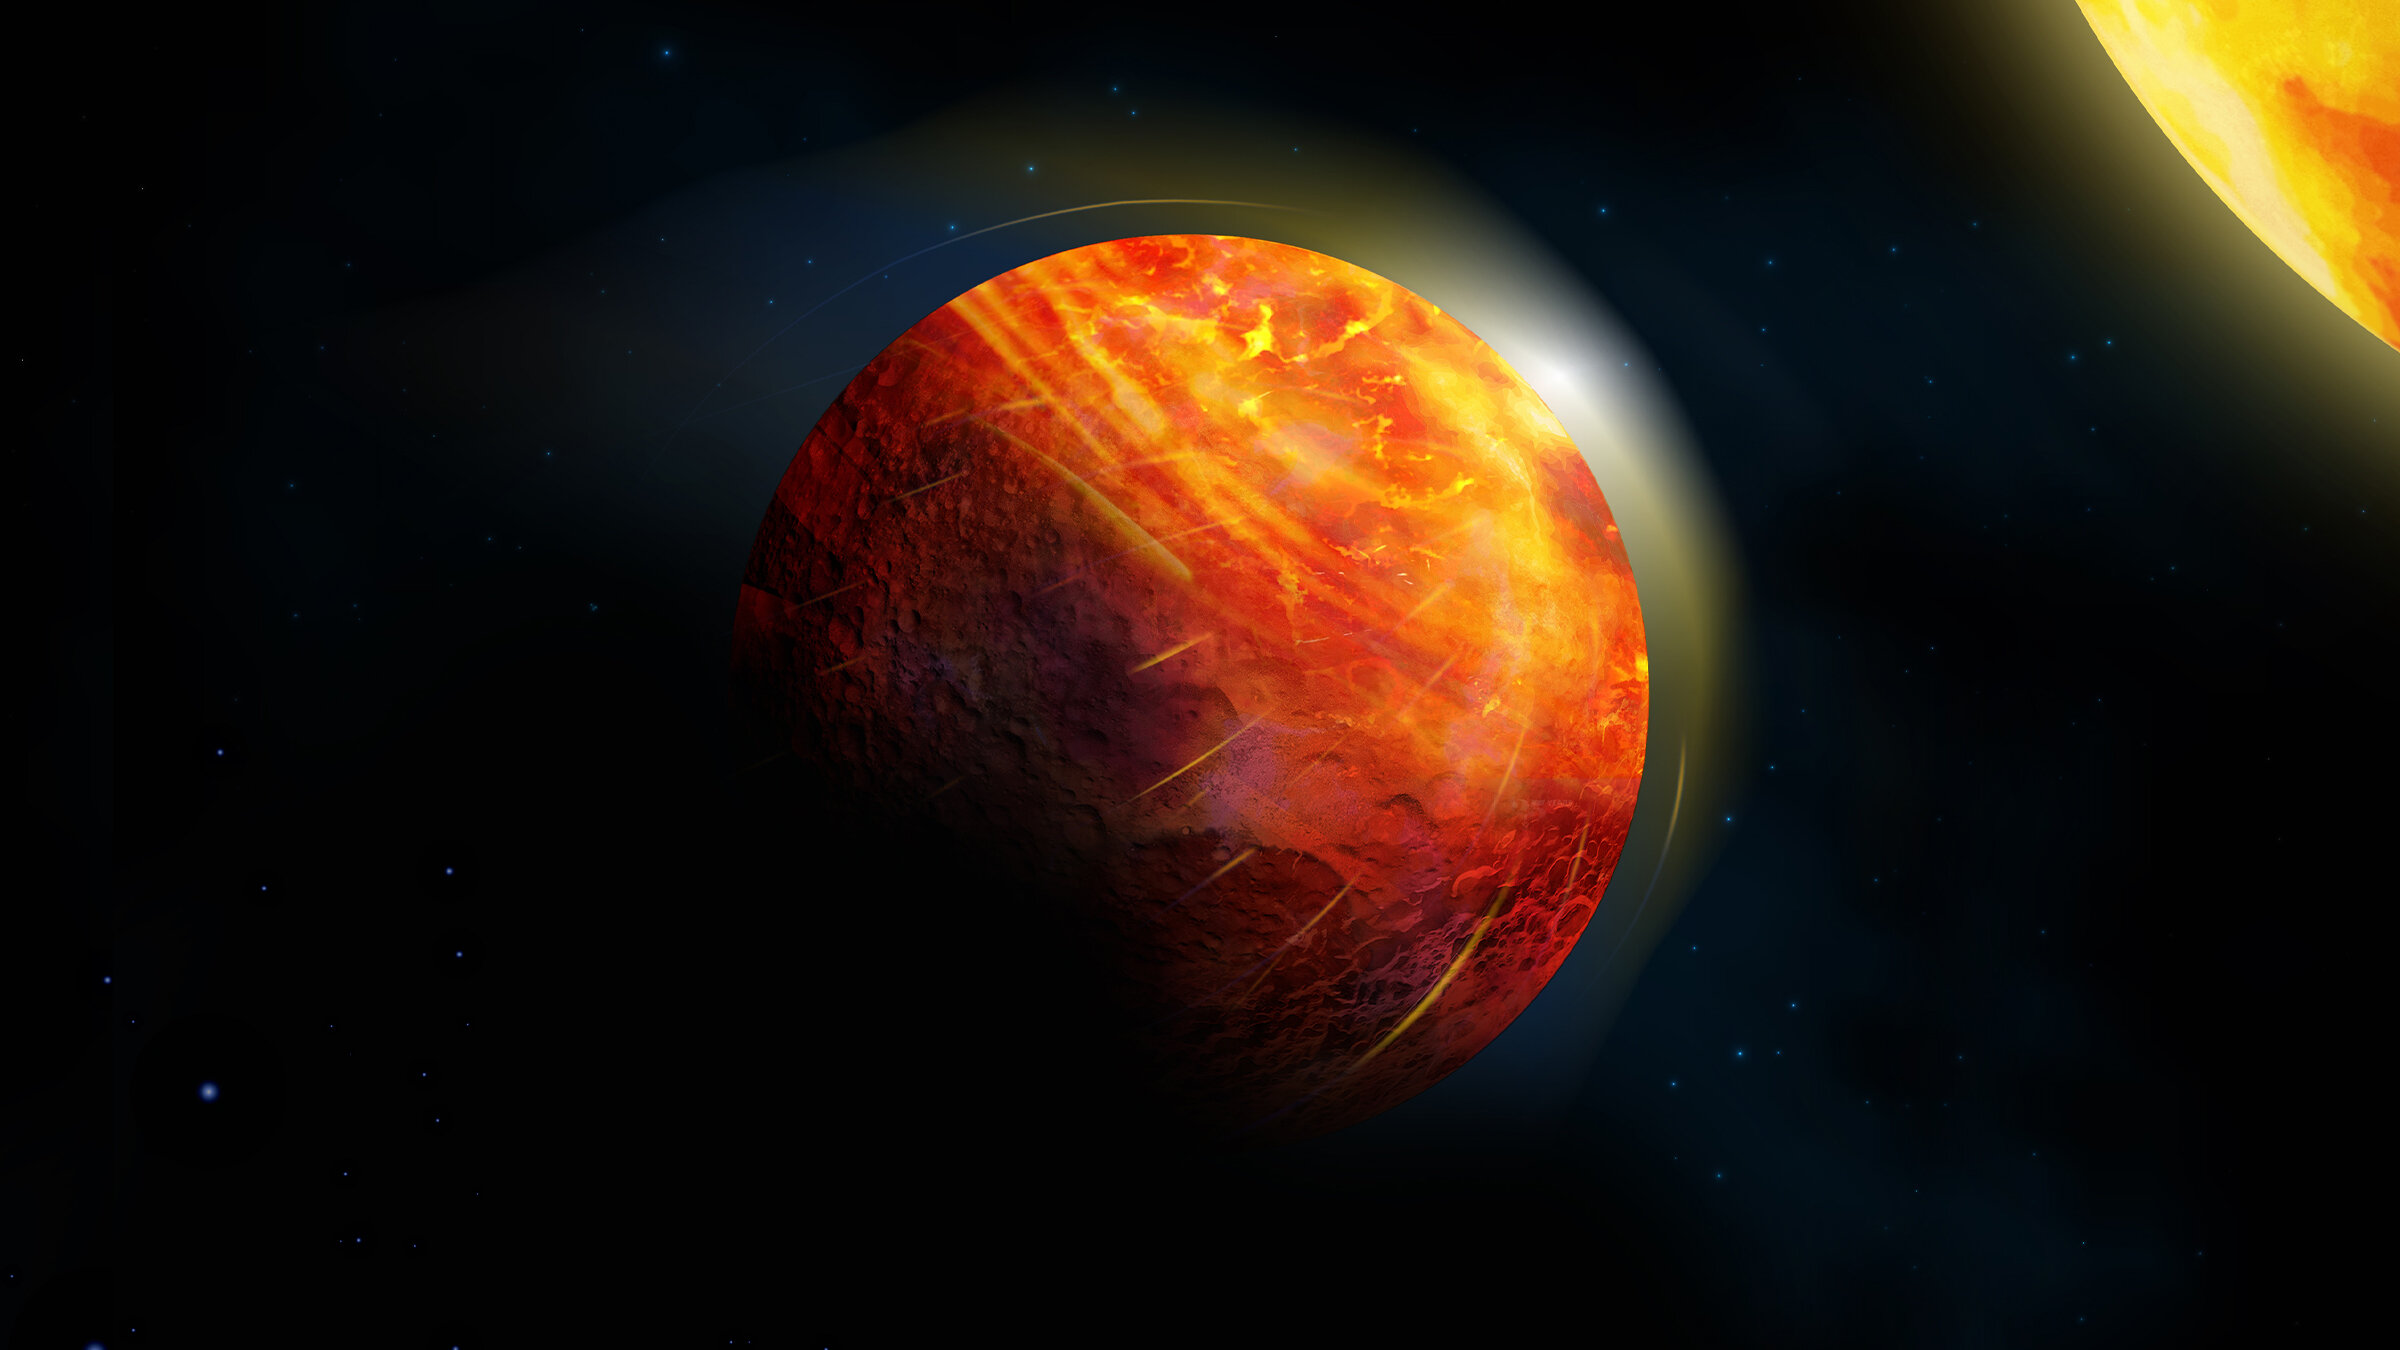 Supersonic winds, rocky rains forecasted on lava planet